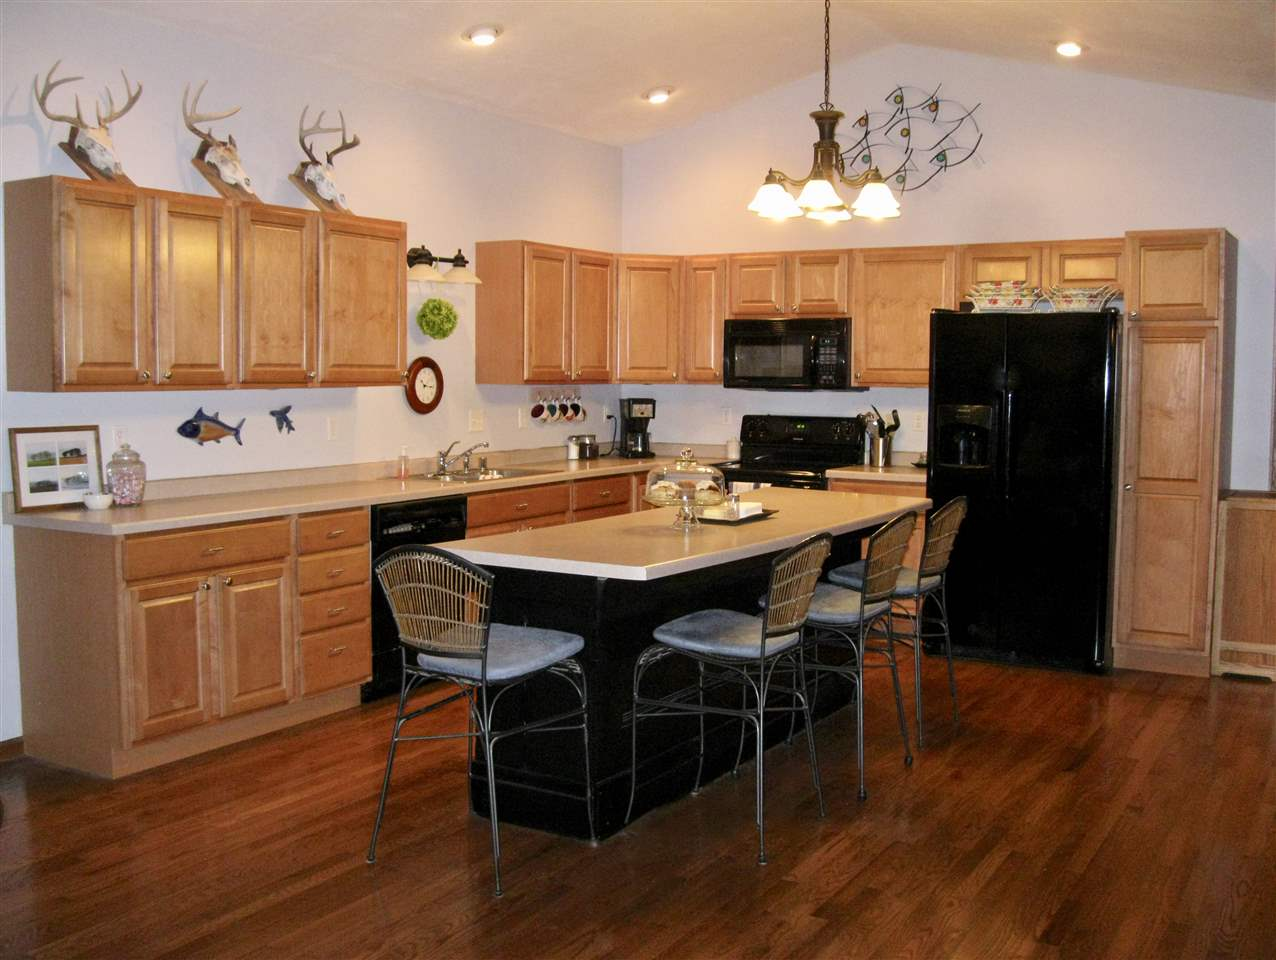 15038 TIMBER LN, Marion, WI 53805